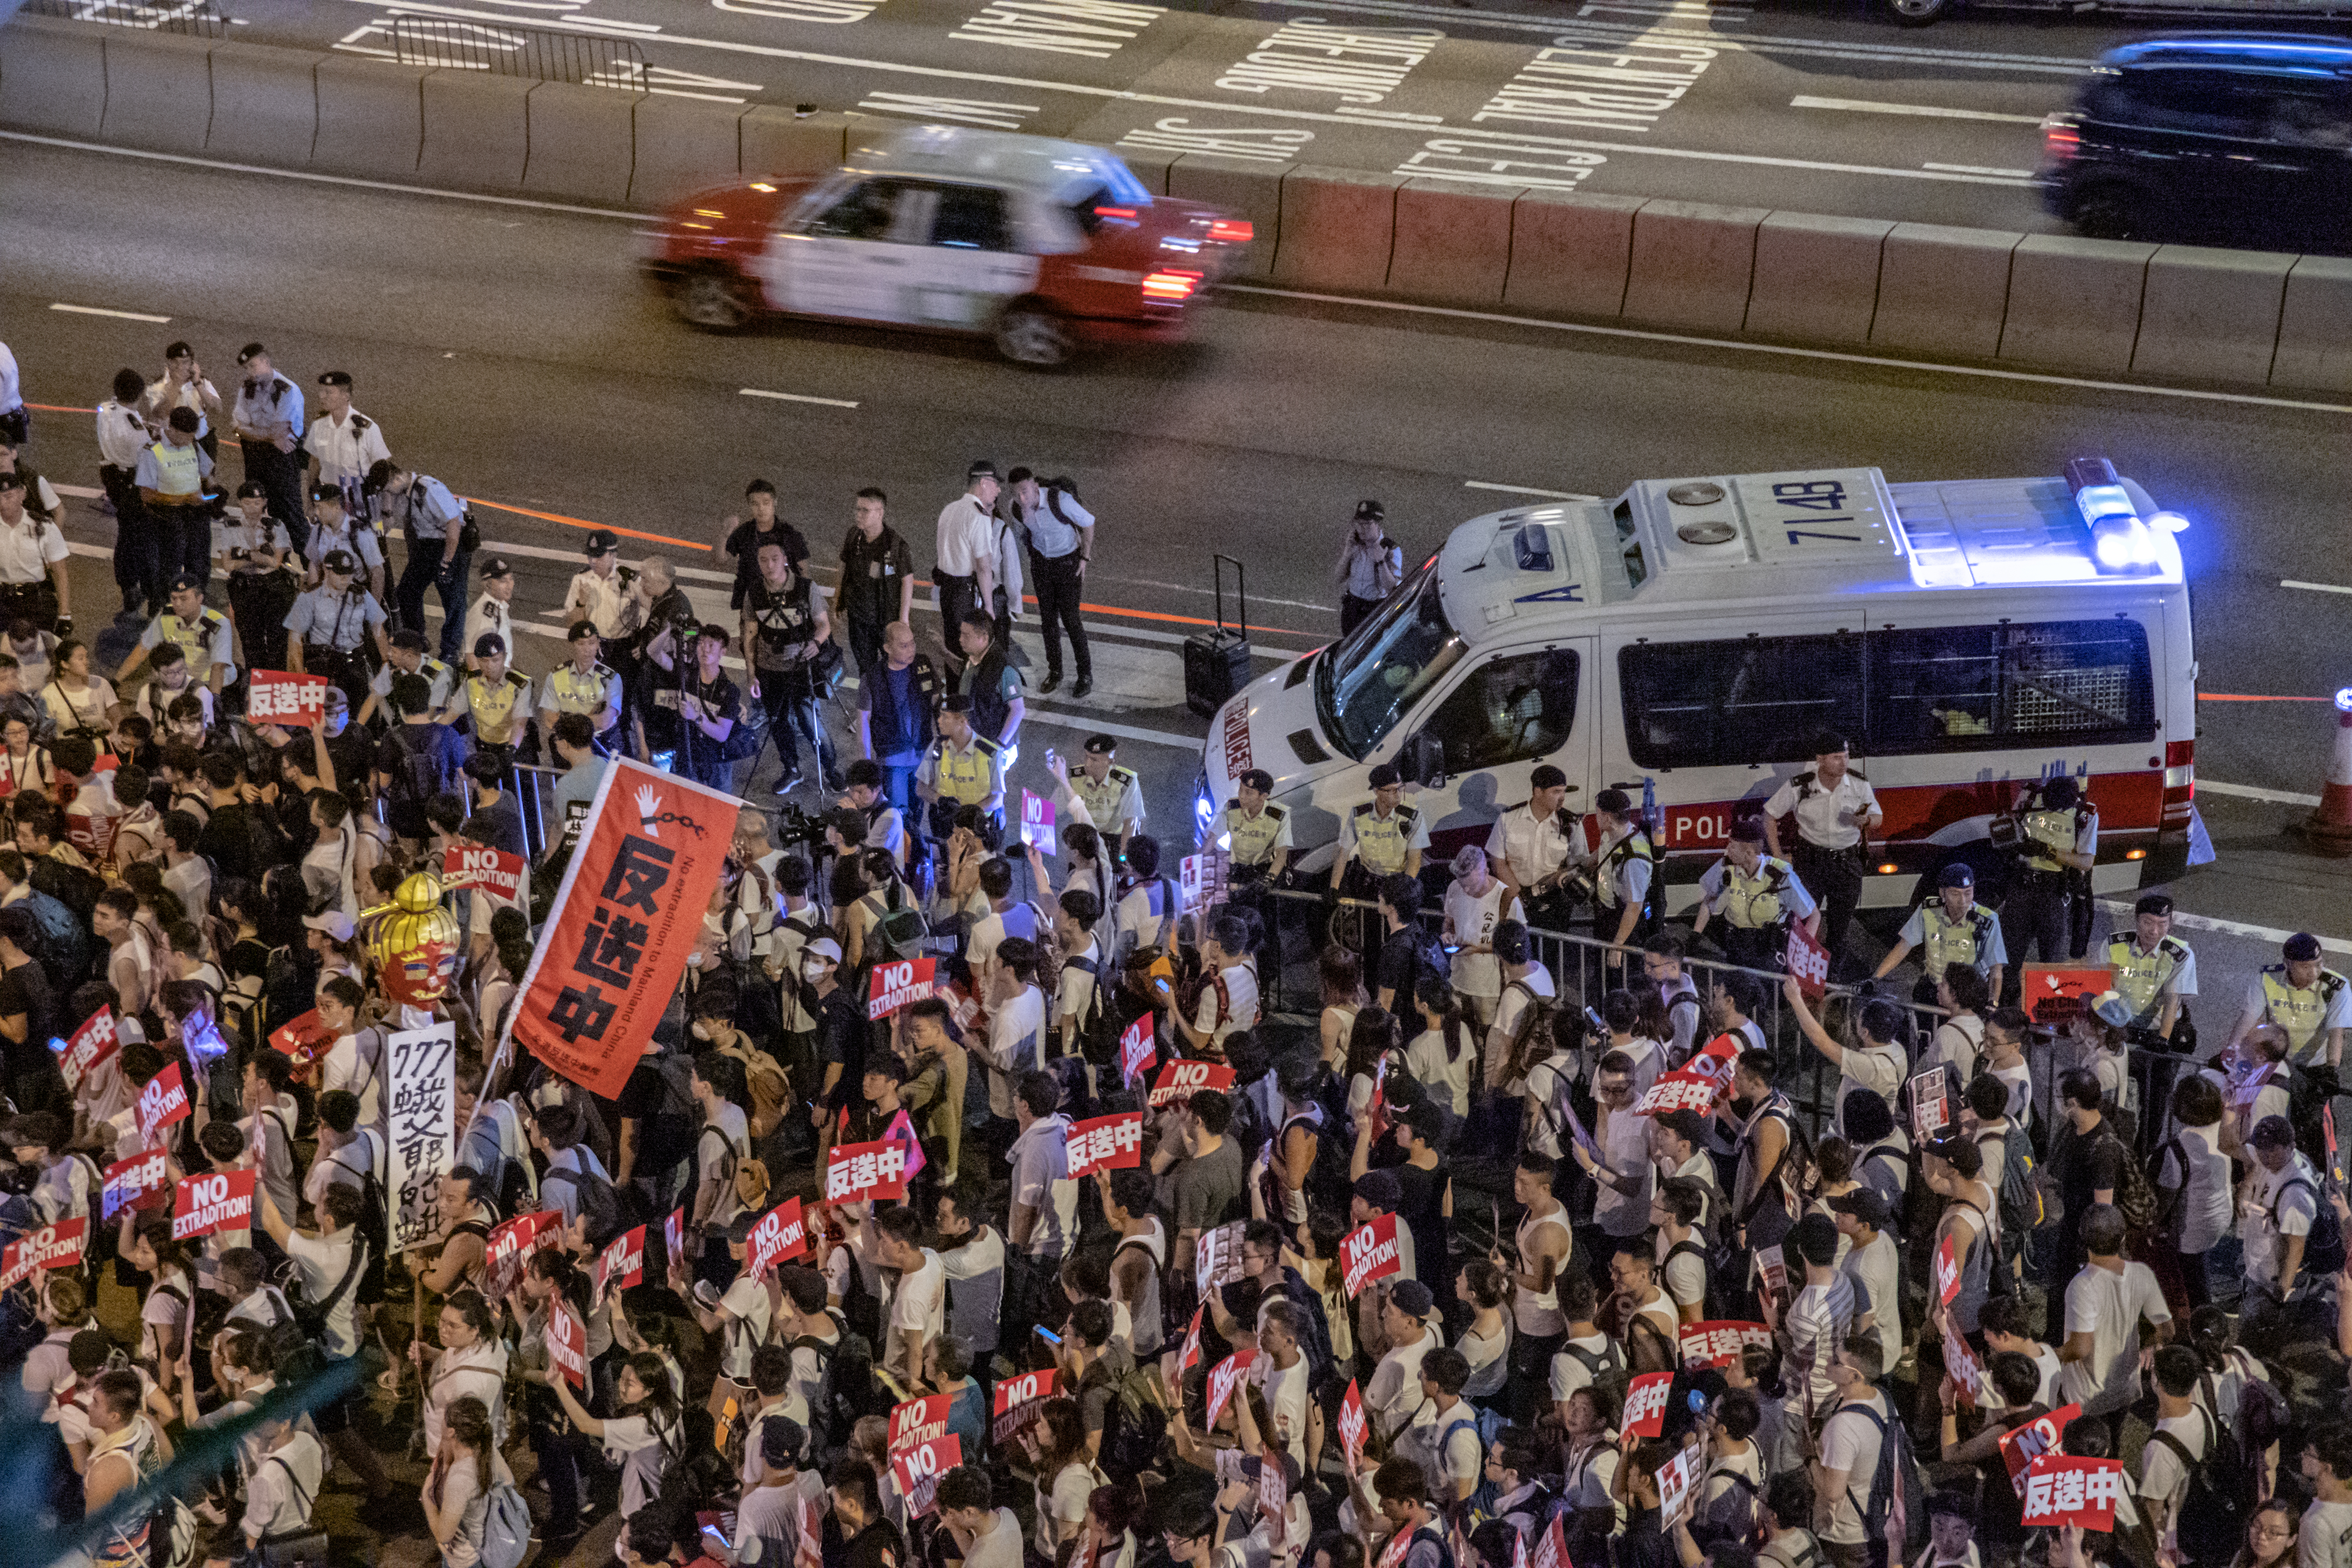 Hong Kong court finds pro-democracy activists guilty of unauthorized assembly